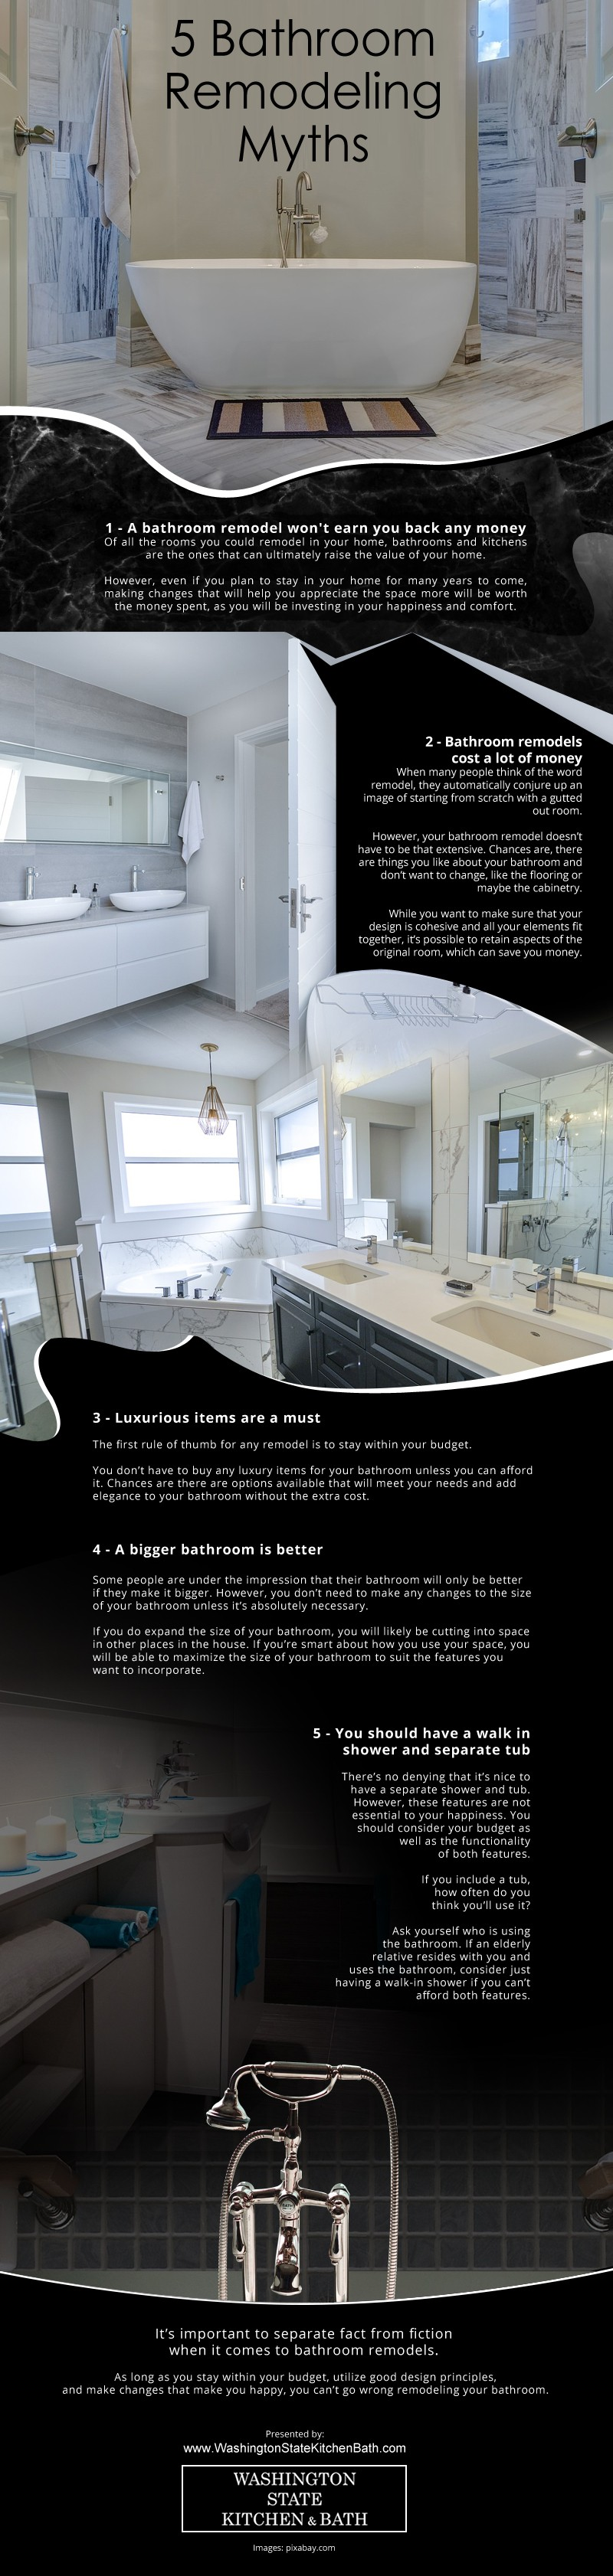 5 Bathroom Remodeling Myths